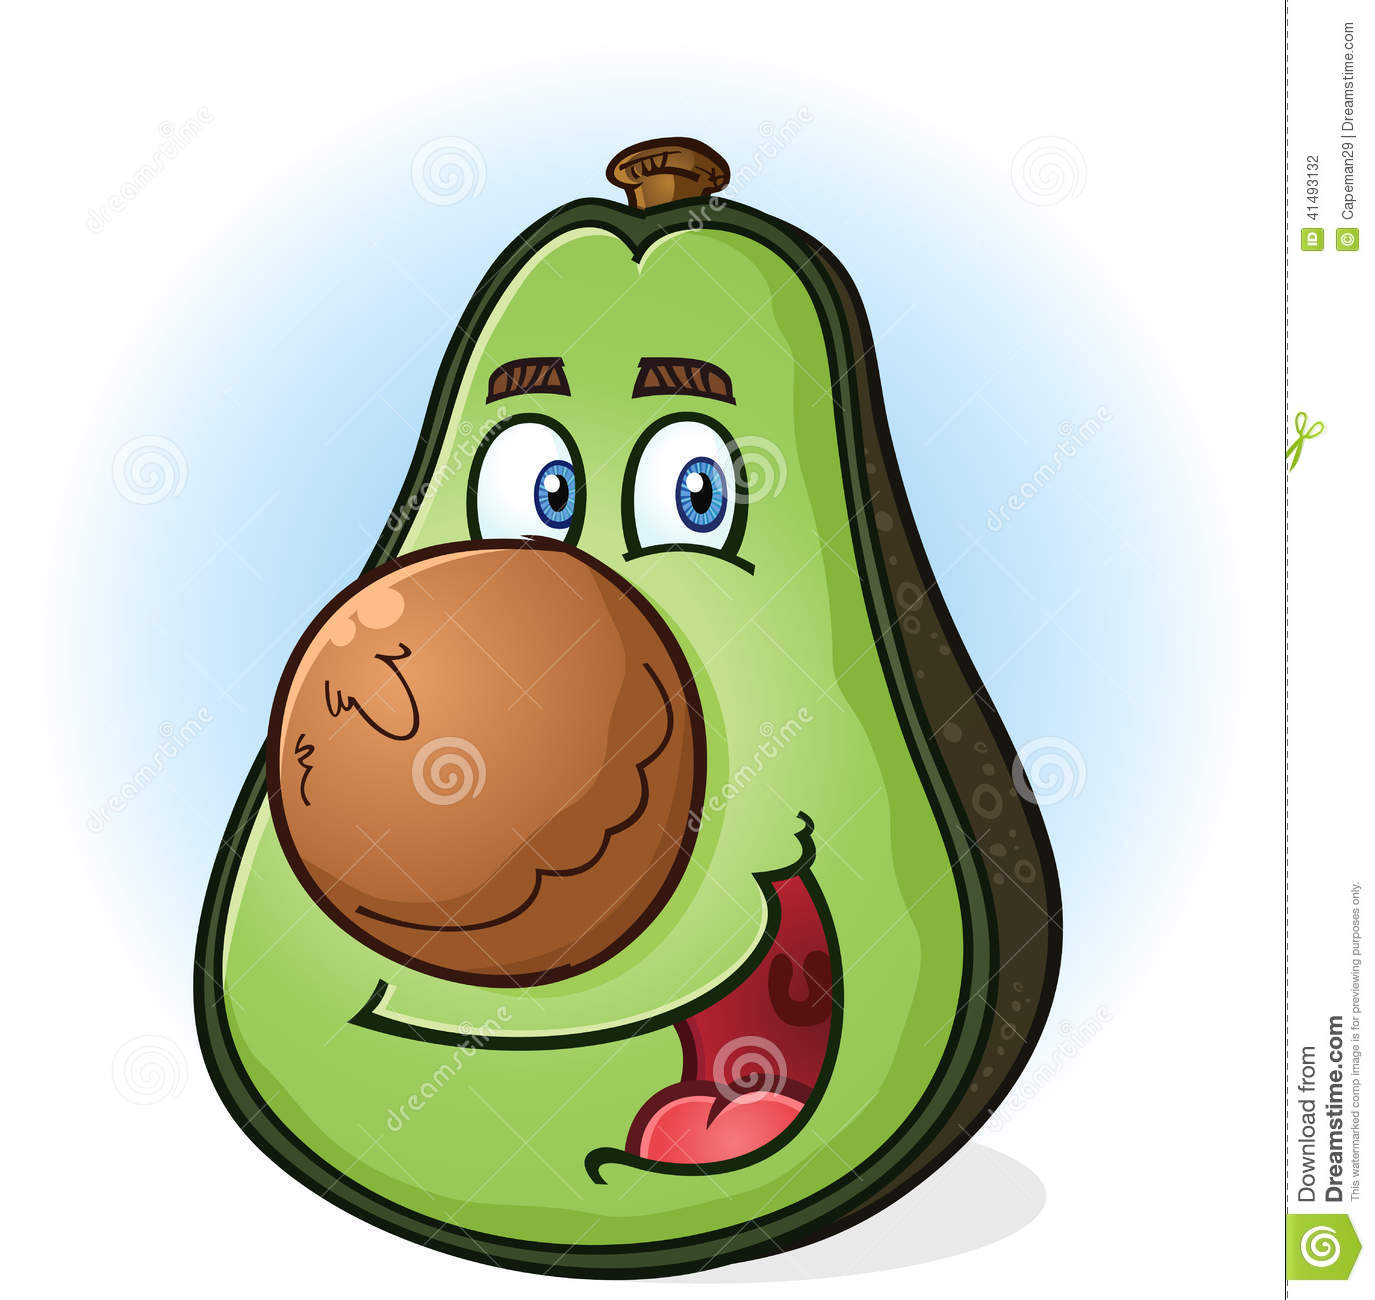 ... green avocado cartoon character with a big round pit for a nose